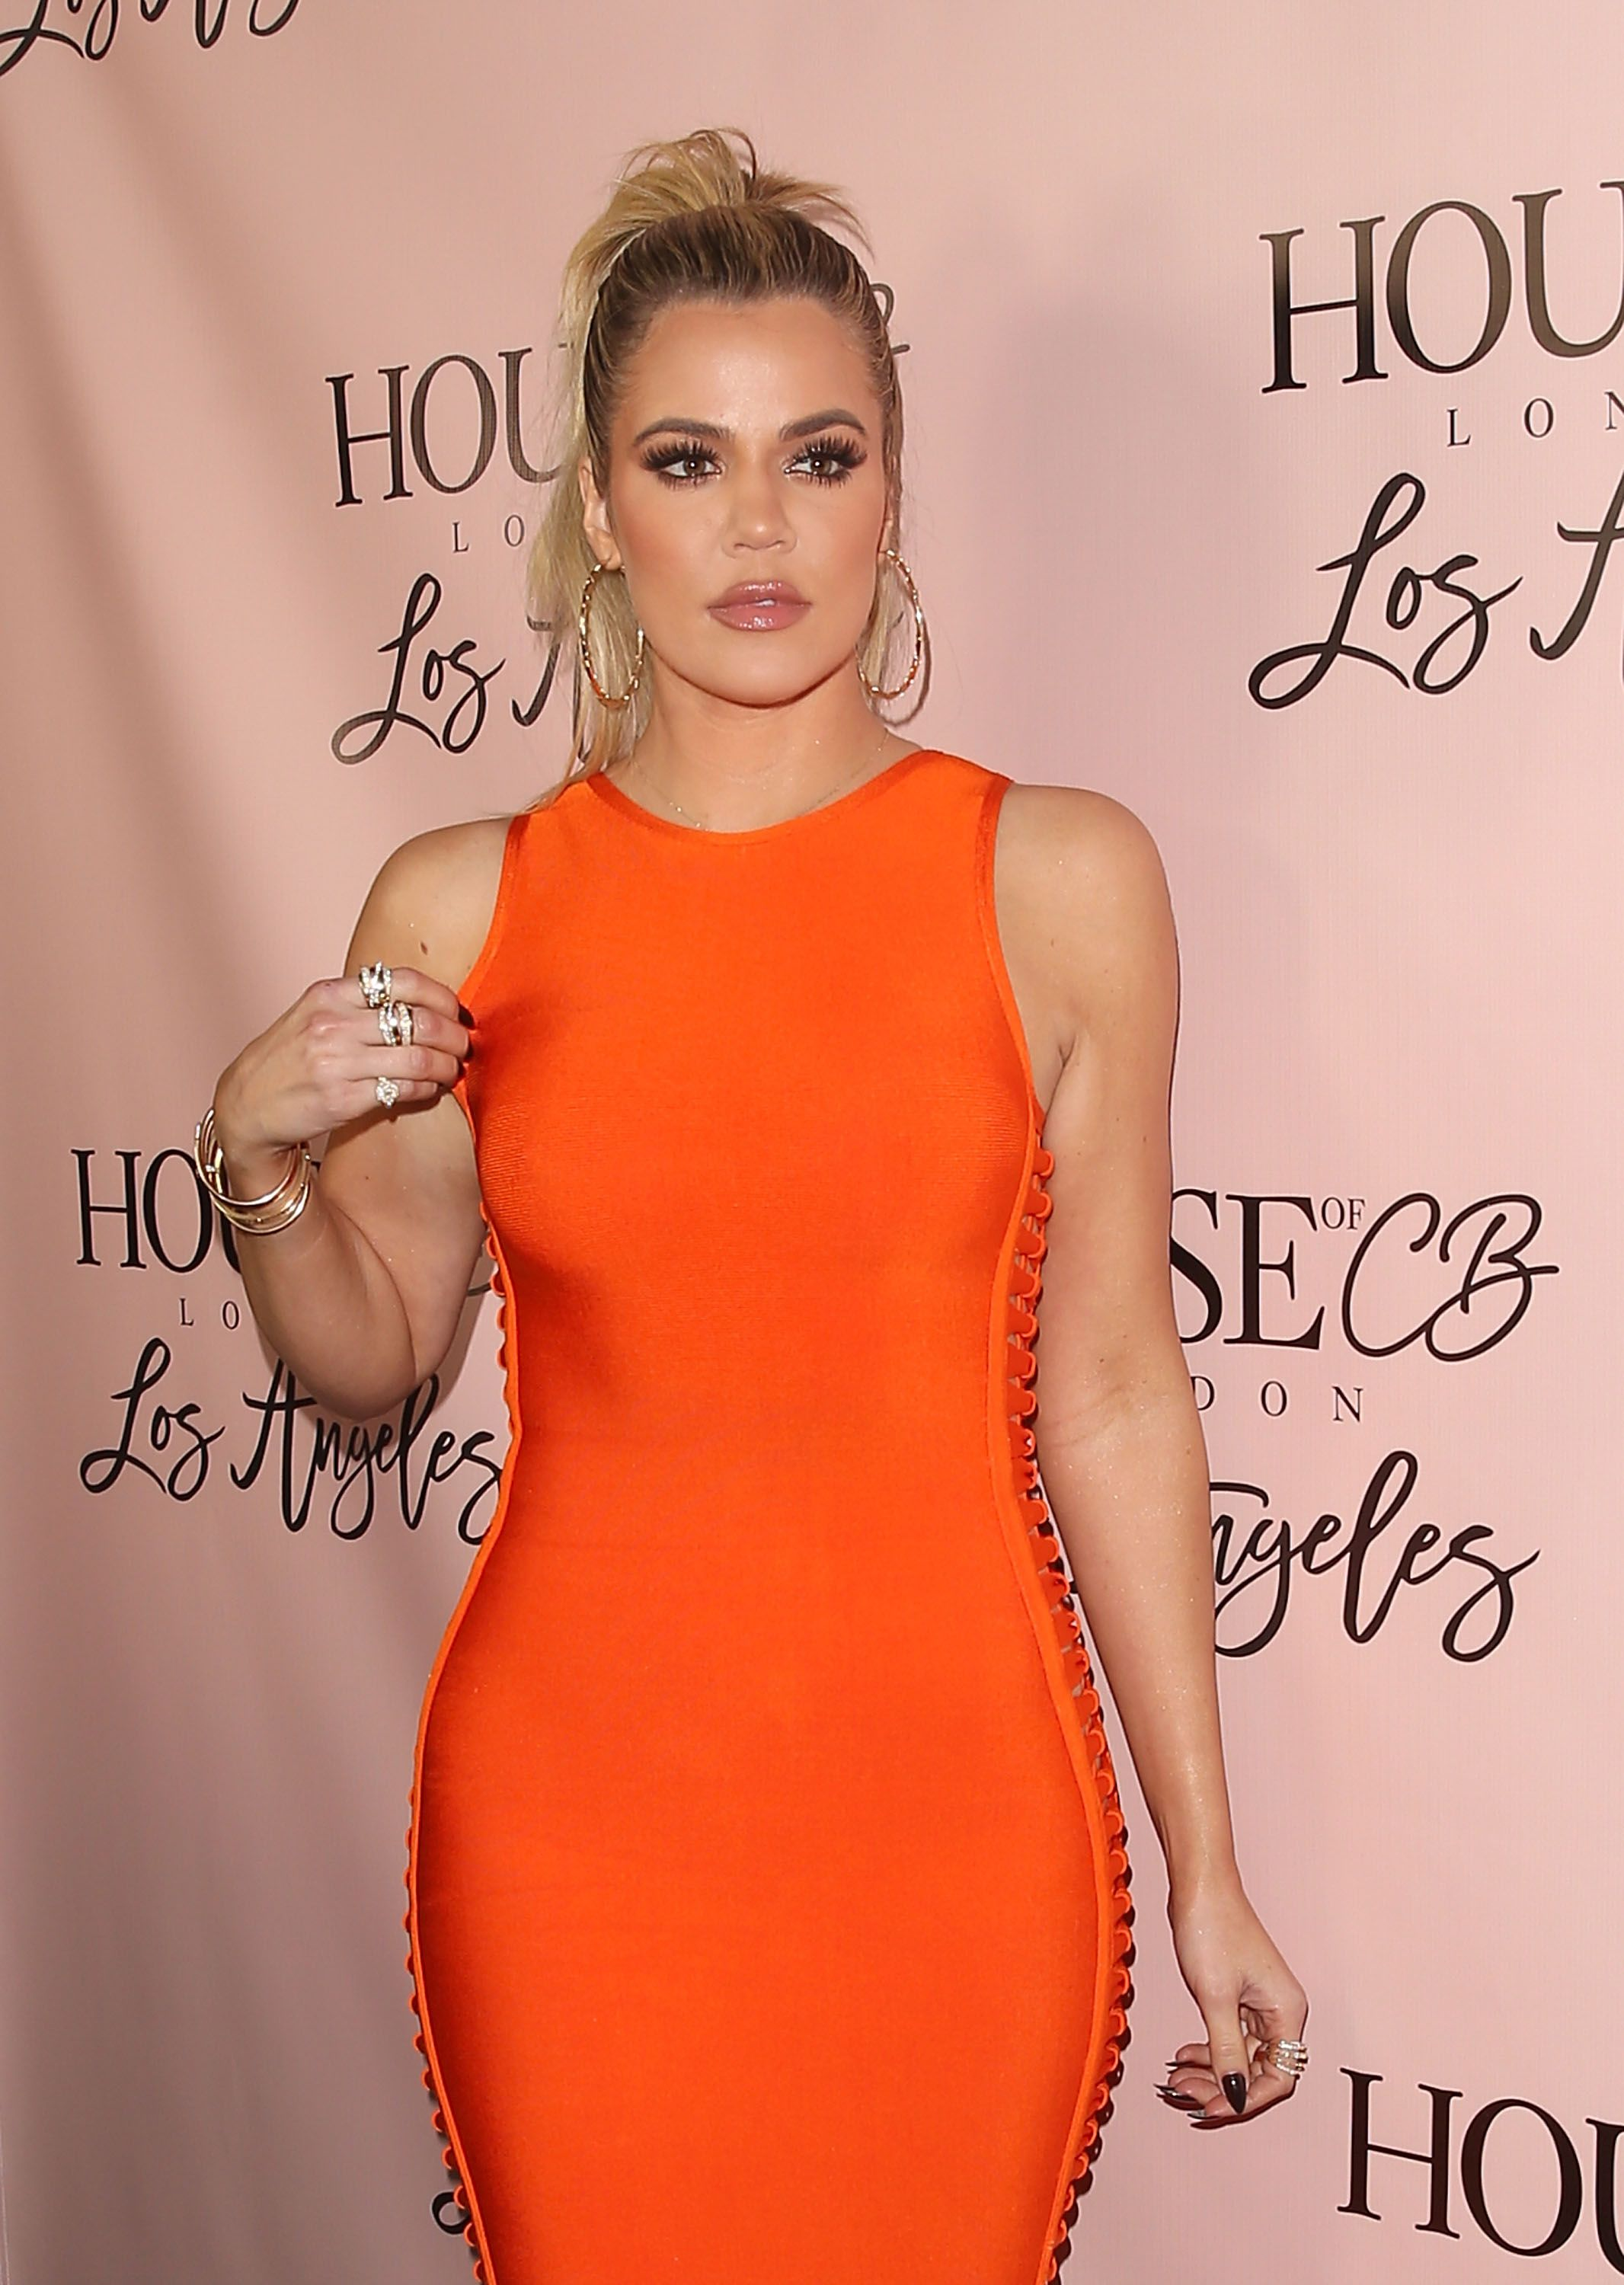 Khloe Kardashian at the House of CB flagship store launch on June 14, 2016 in West Hollywood, California | Photo: Getty Images